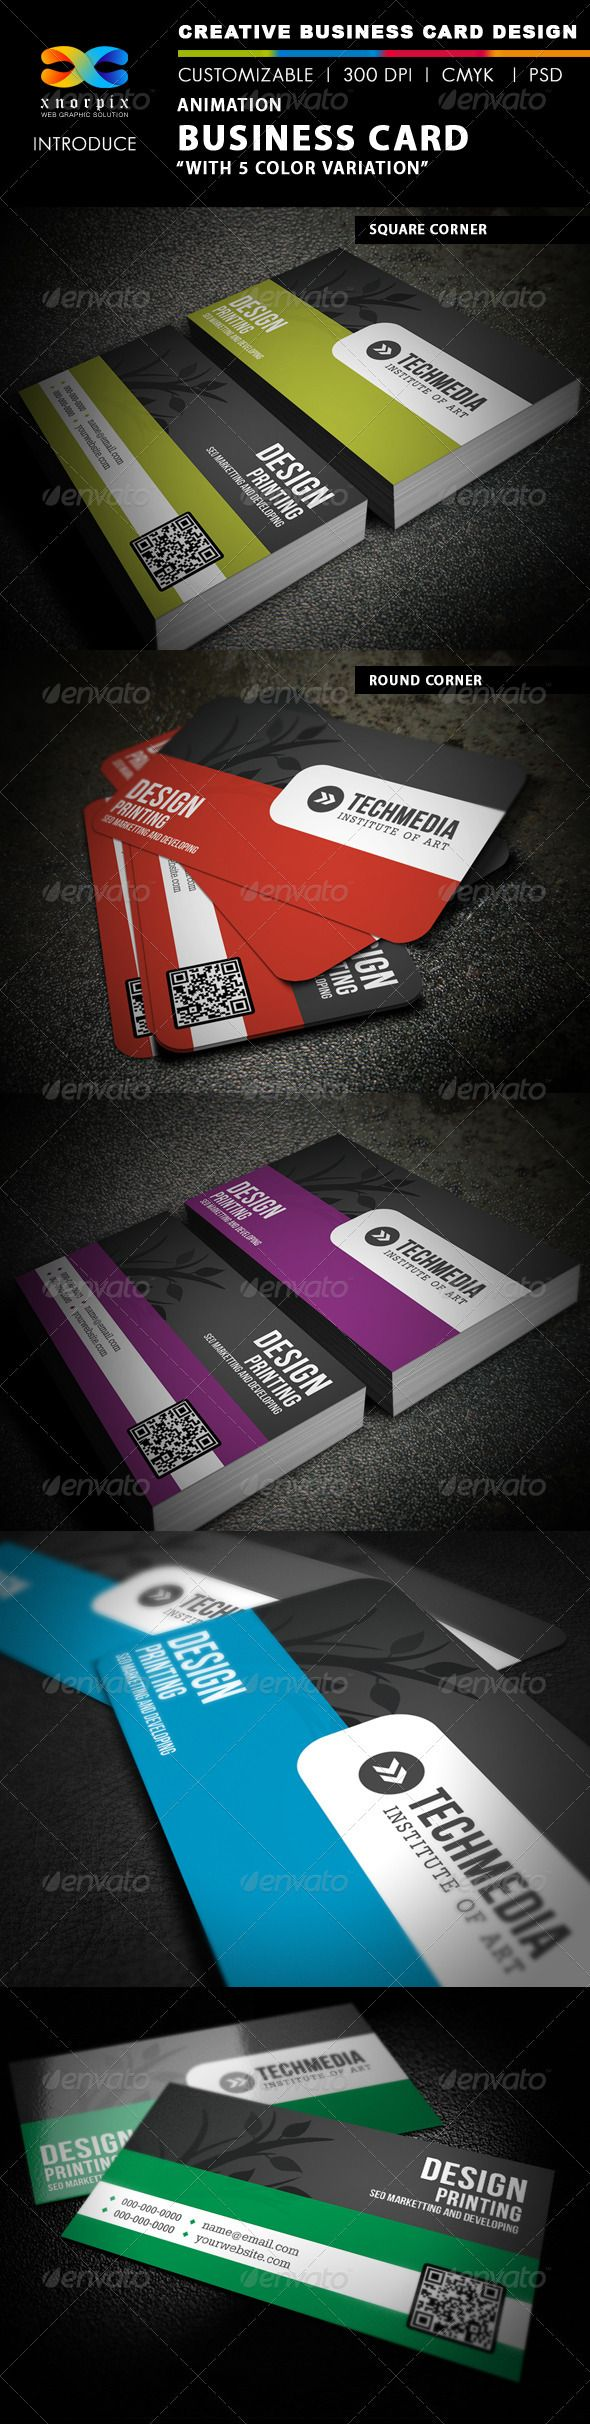 Animation Business Card | Business cards, Animation and Business